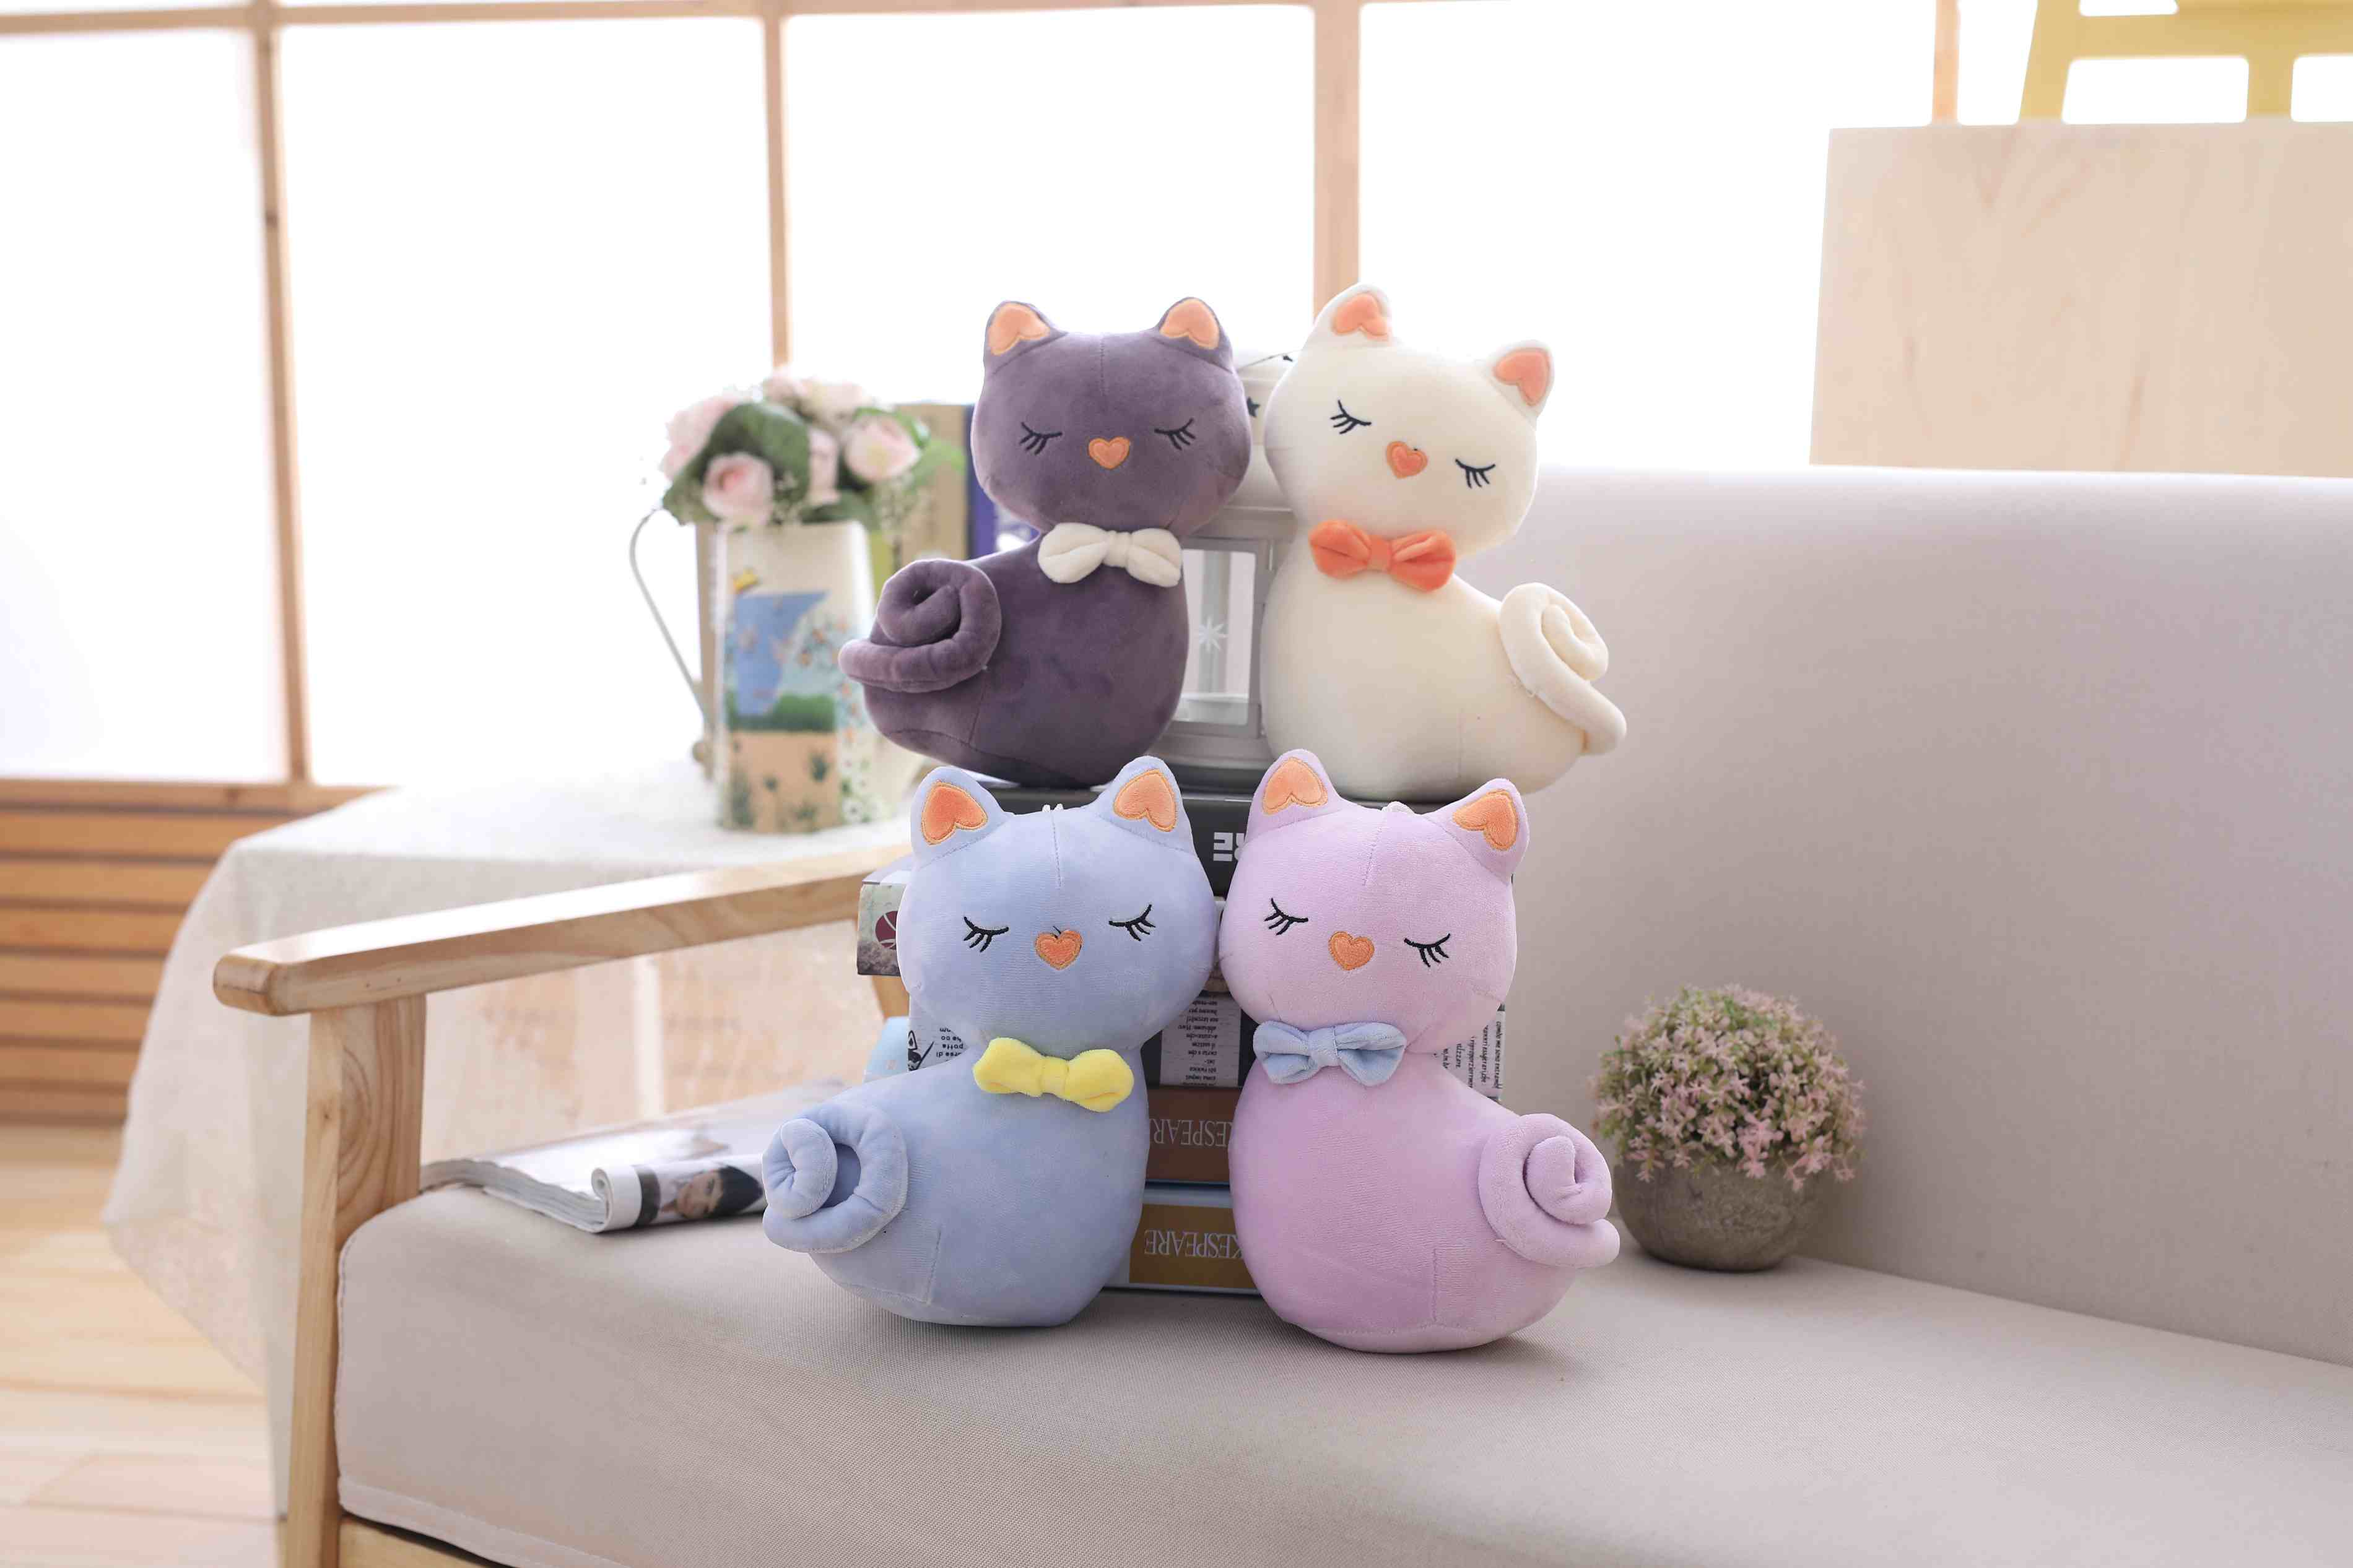 NEW 1PCS 4colors KAWAII 27CM Cats Stuffed TOYS Keychain Cat Gift Plush TOY DOLL For Kid's Party Birthday Plush Toys For Girl NEW